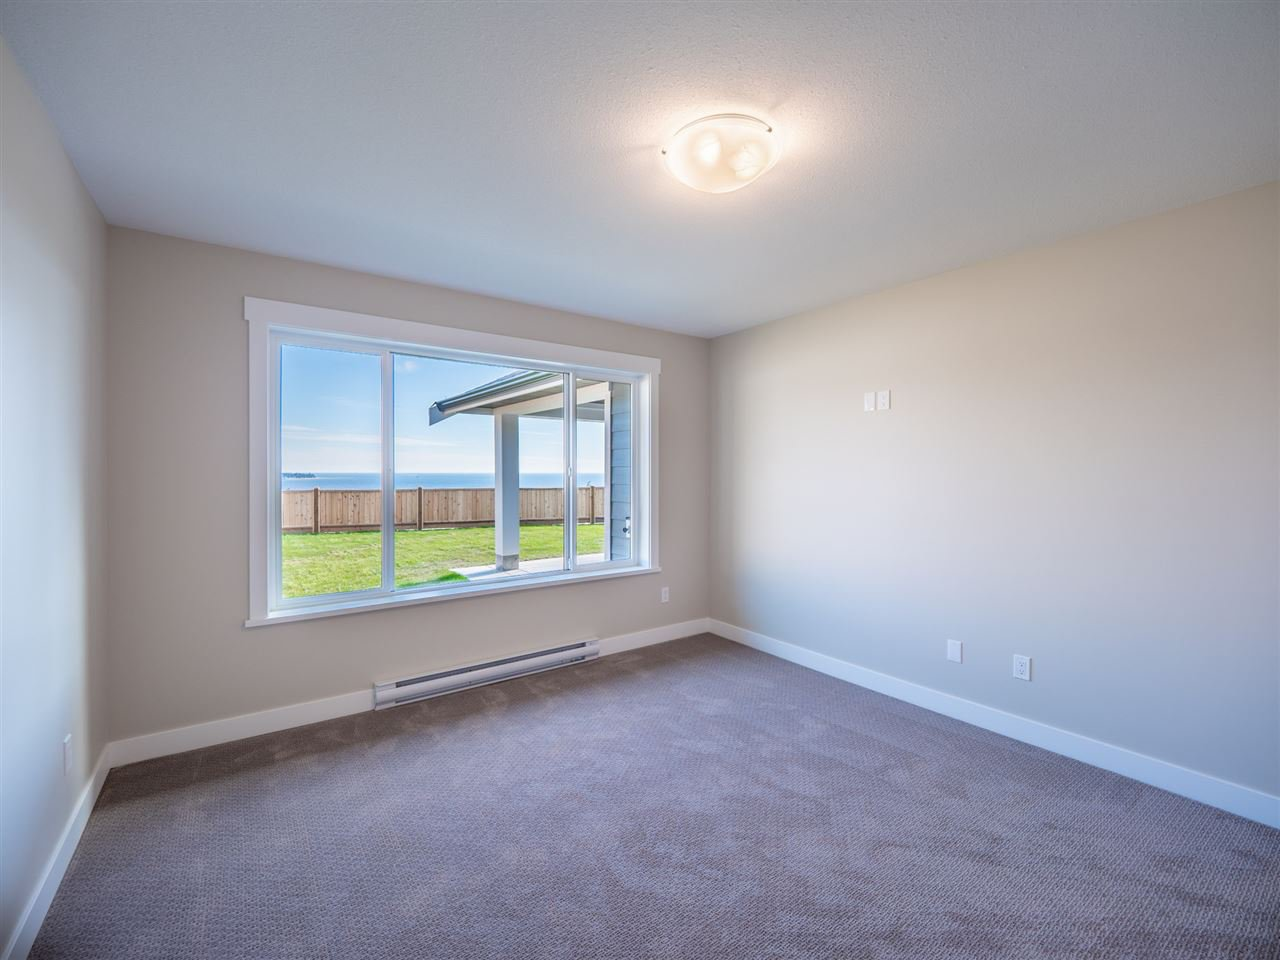 """Photo 15: Photos: 5634 KINGBIRD Crescent in Sechelt: Sechelt District House for sale in """"SilverStone Heights Phase2"""" (Sunshine Coast)  : MLS®# R2466073"""